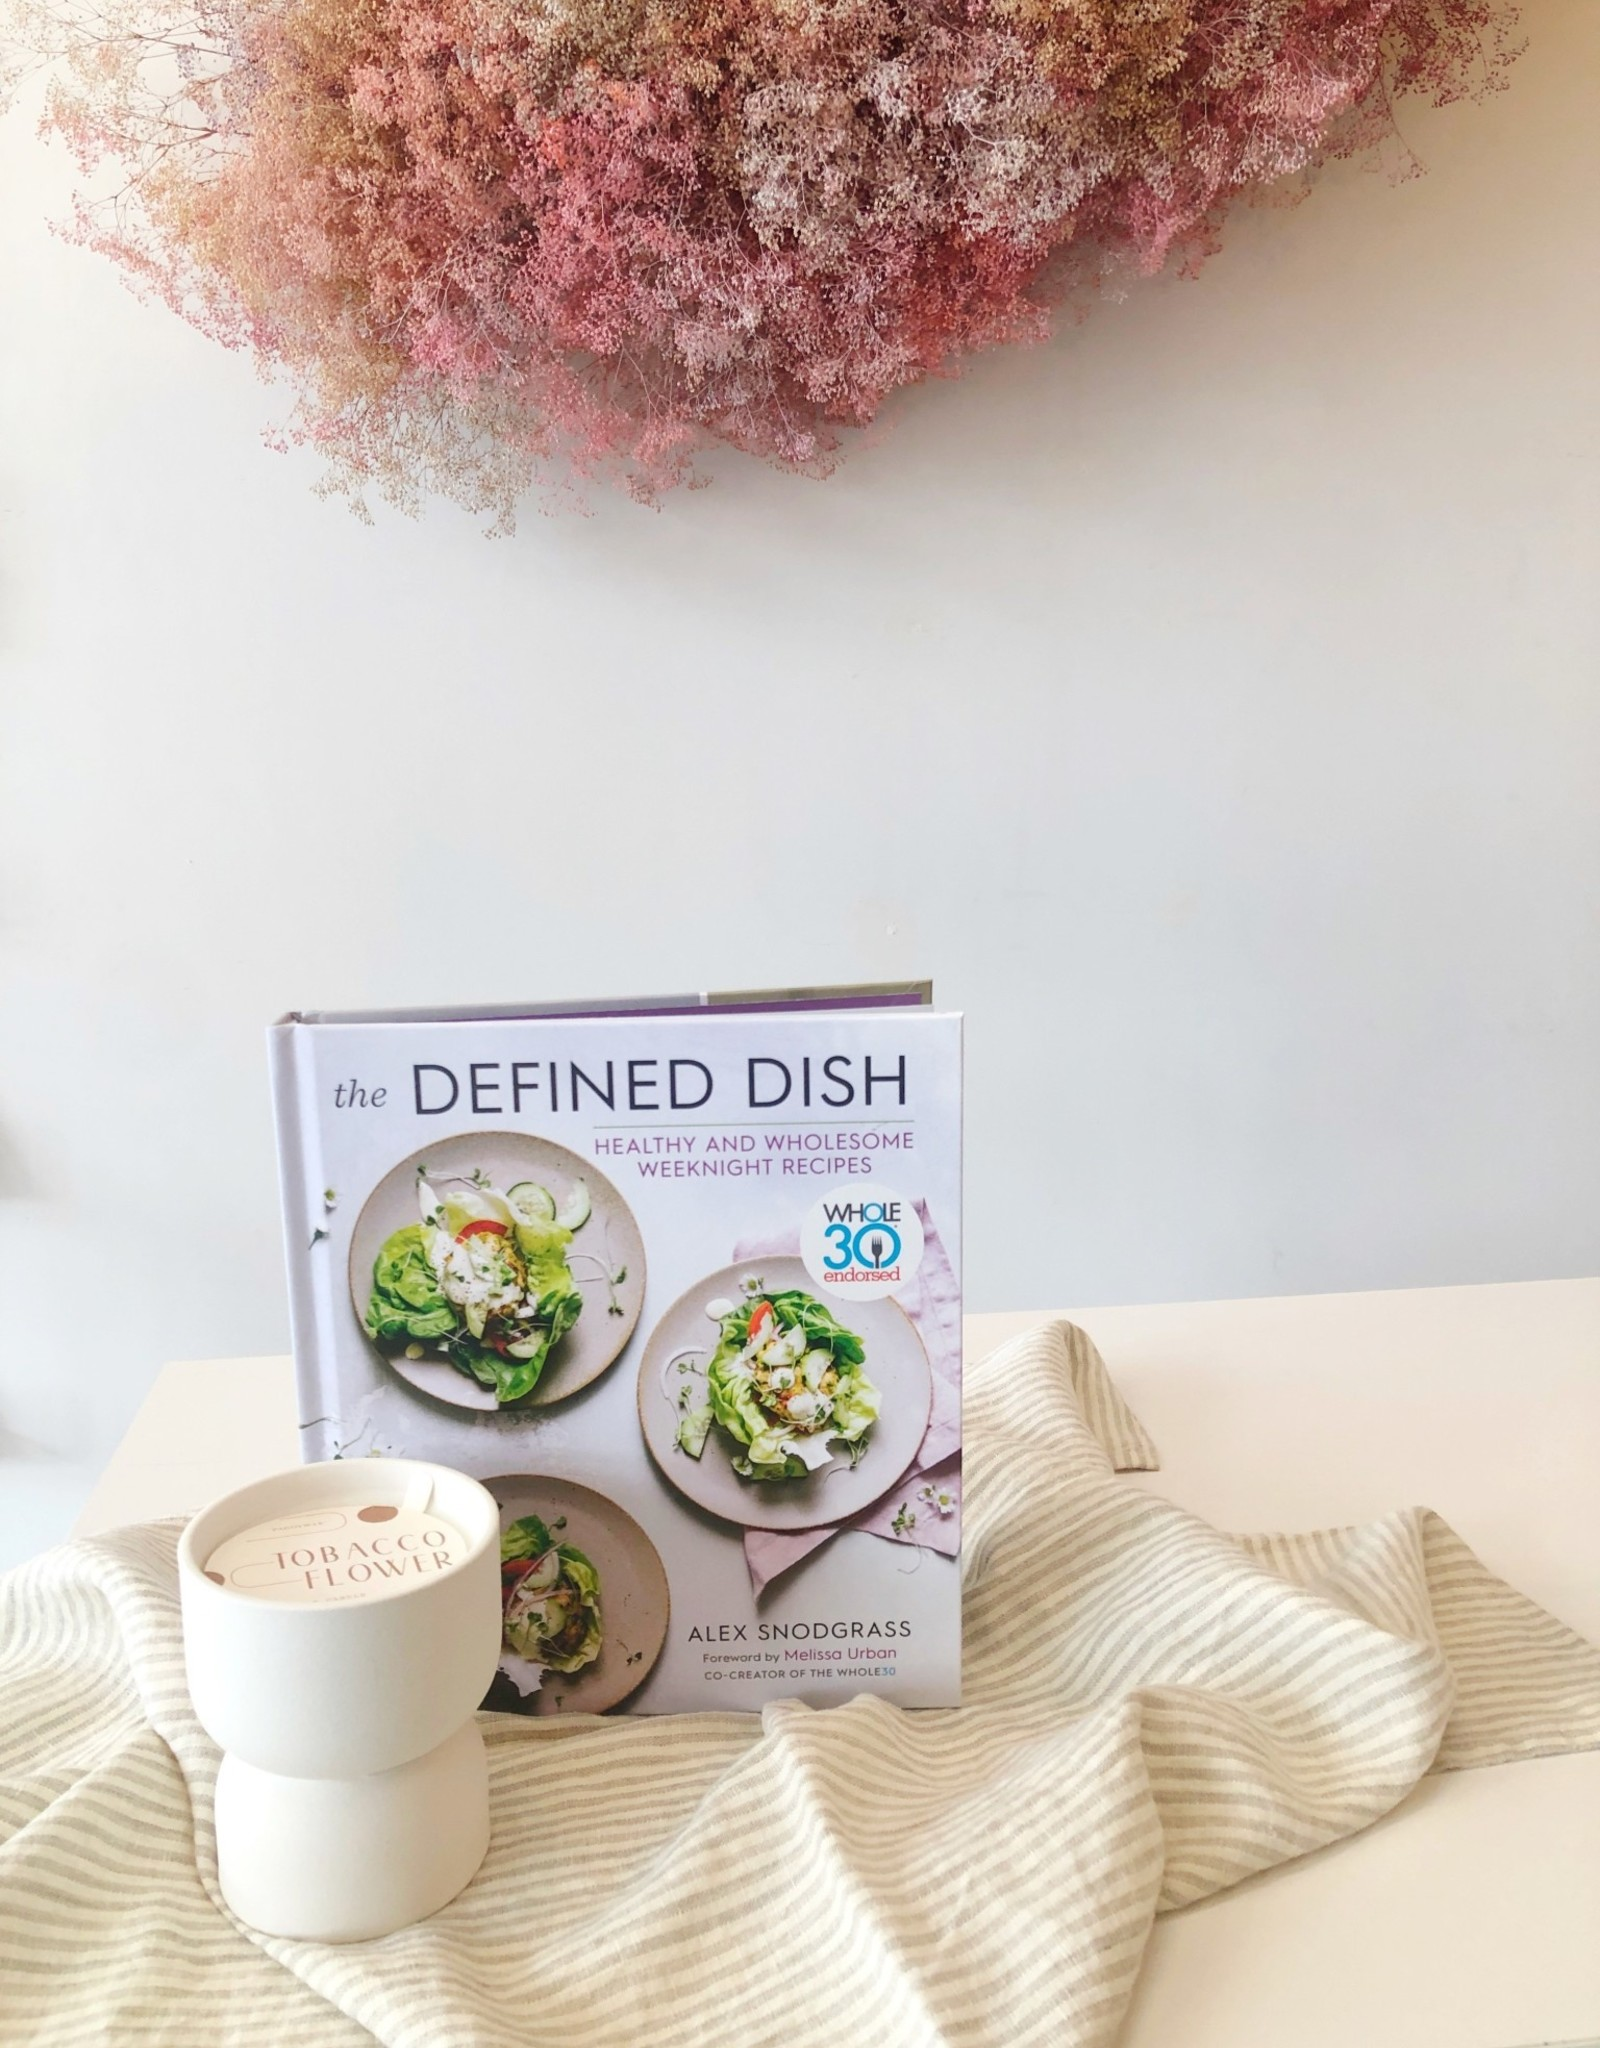 The Defined Dish Gift Box